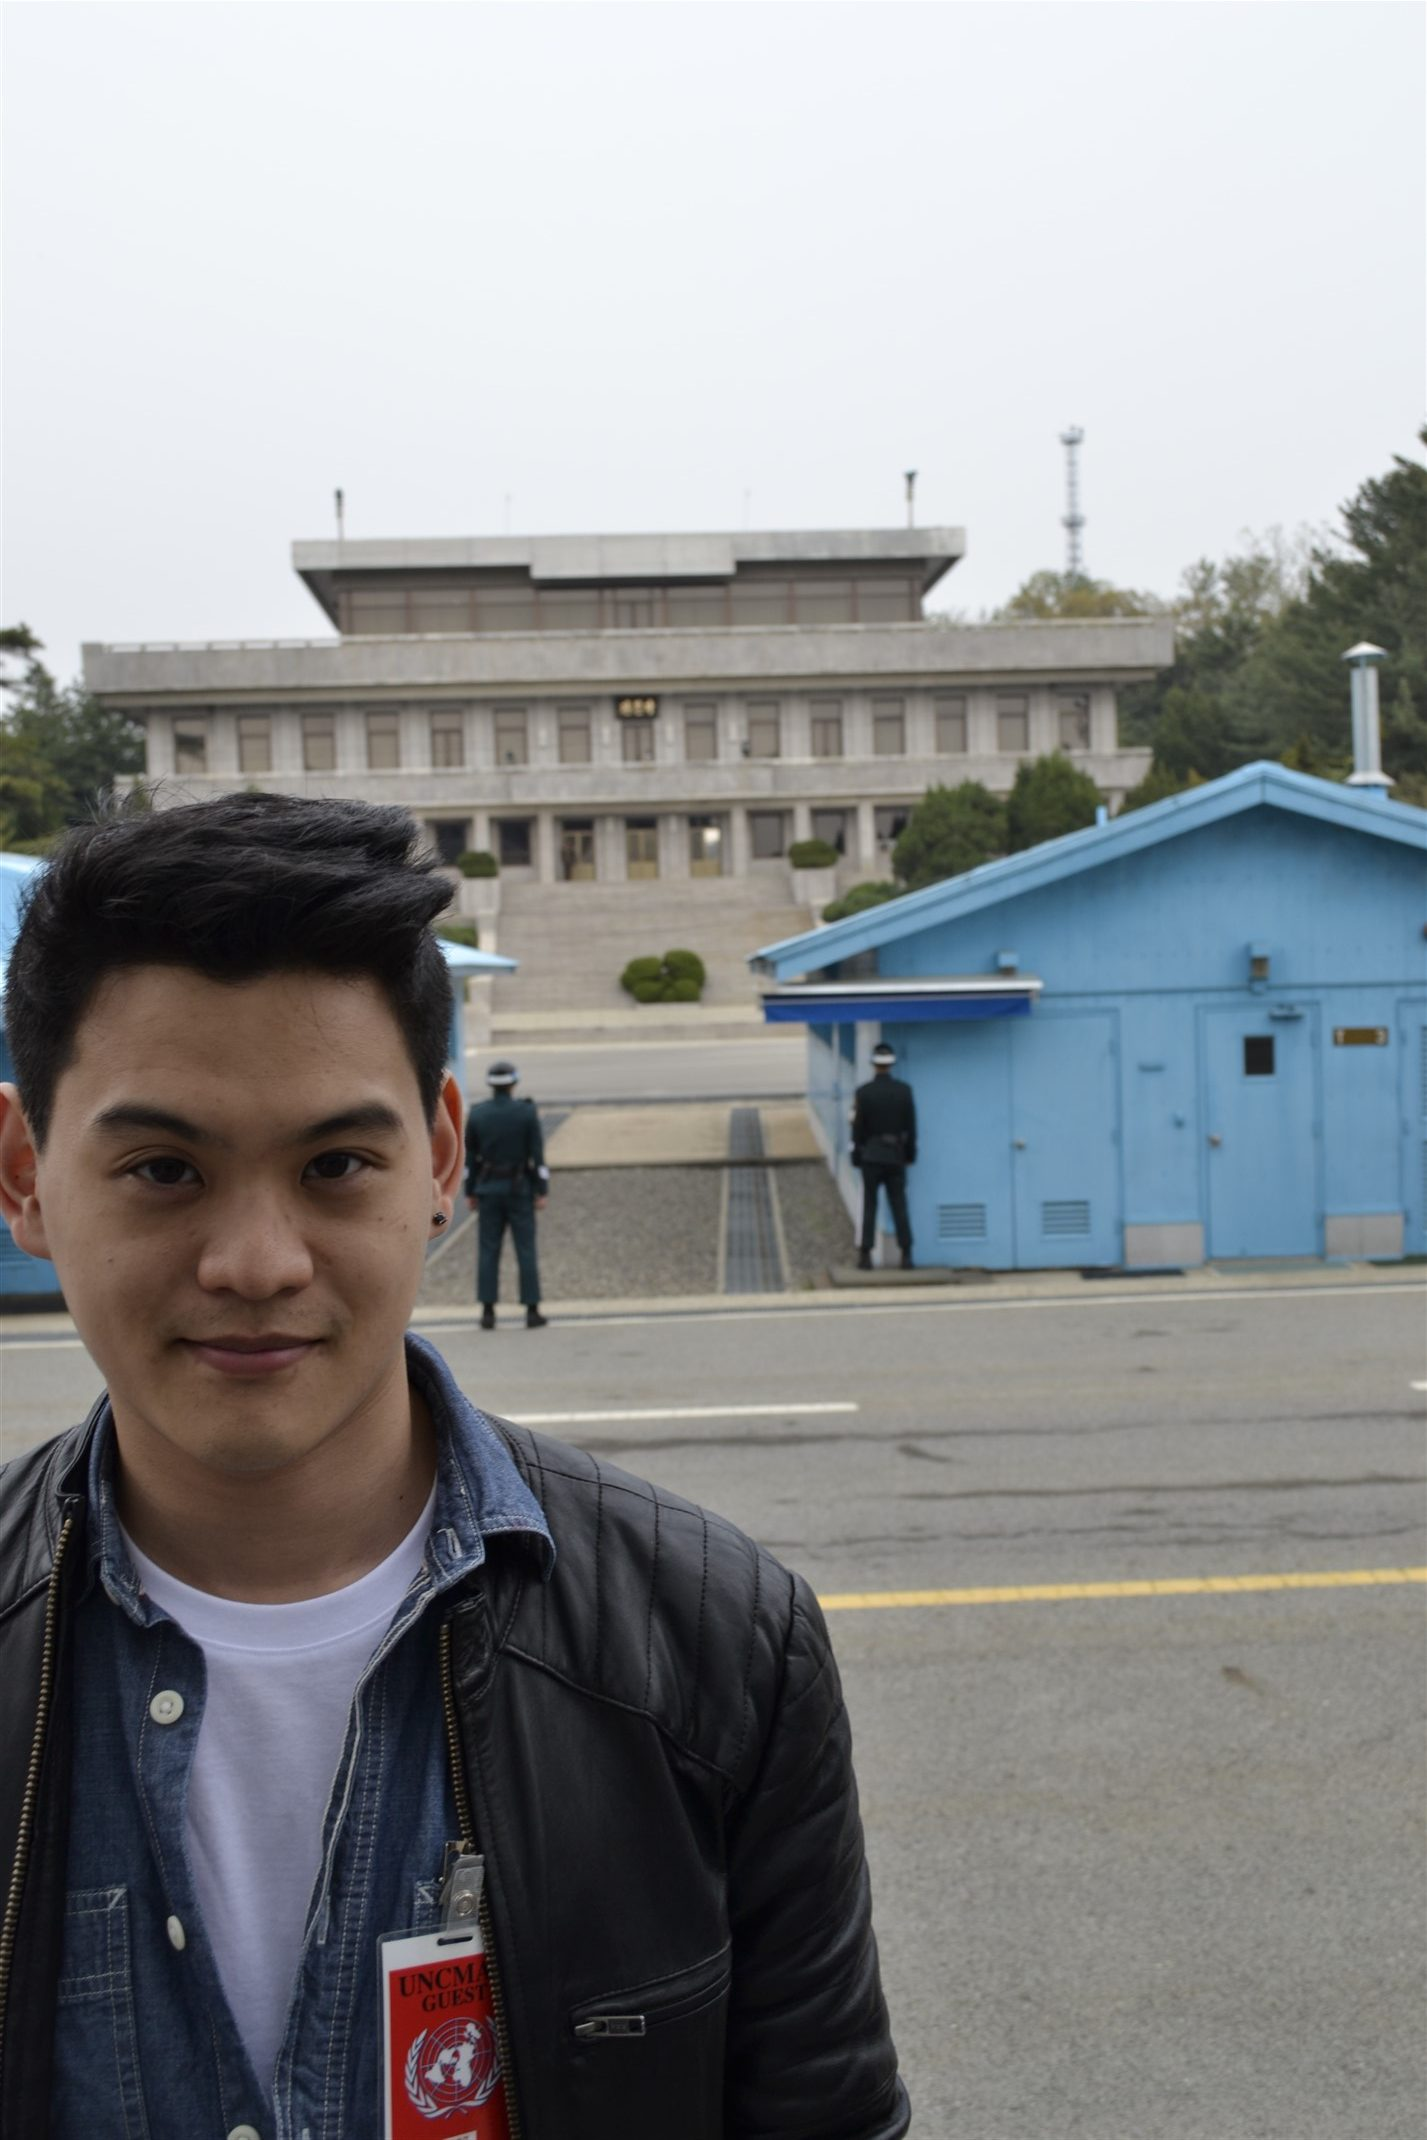 visite - DMZ - JSA - Corée du nord - blog Corée du sud - the korean dream